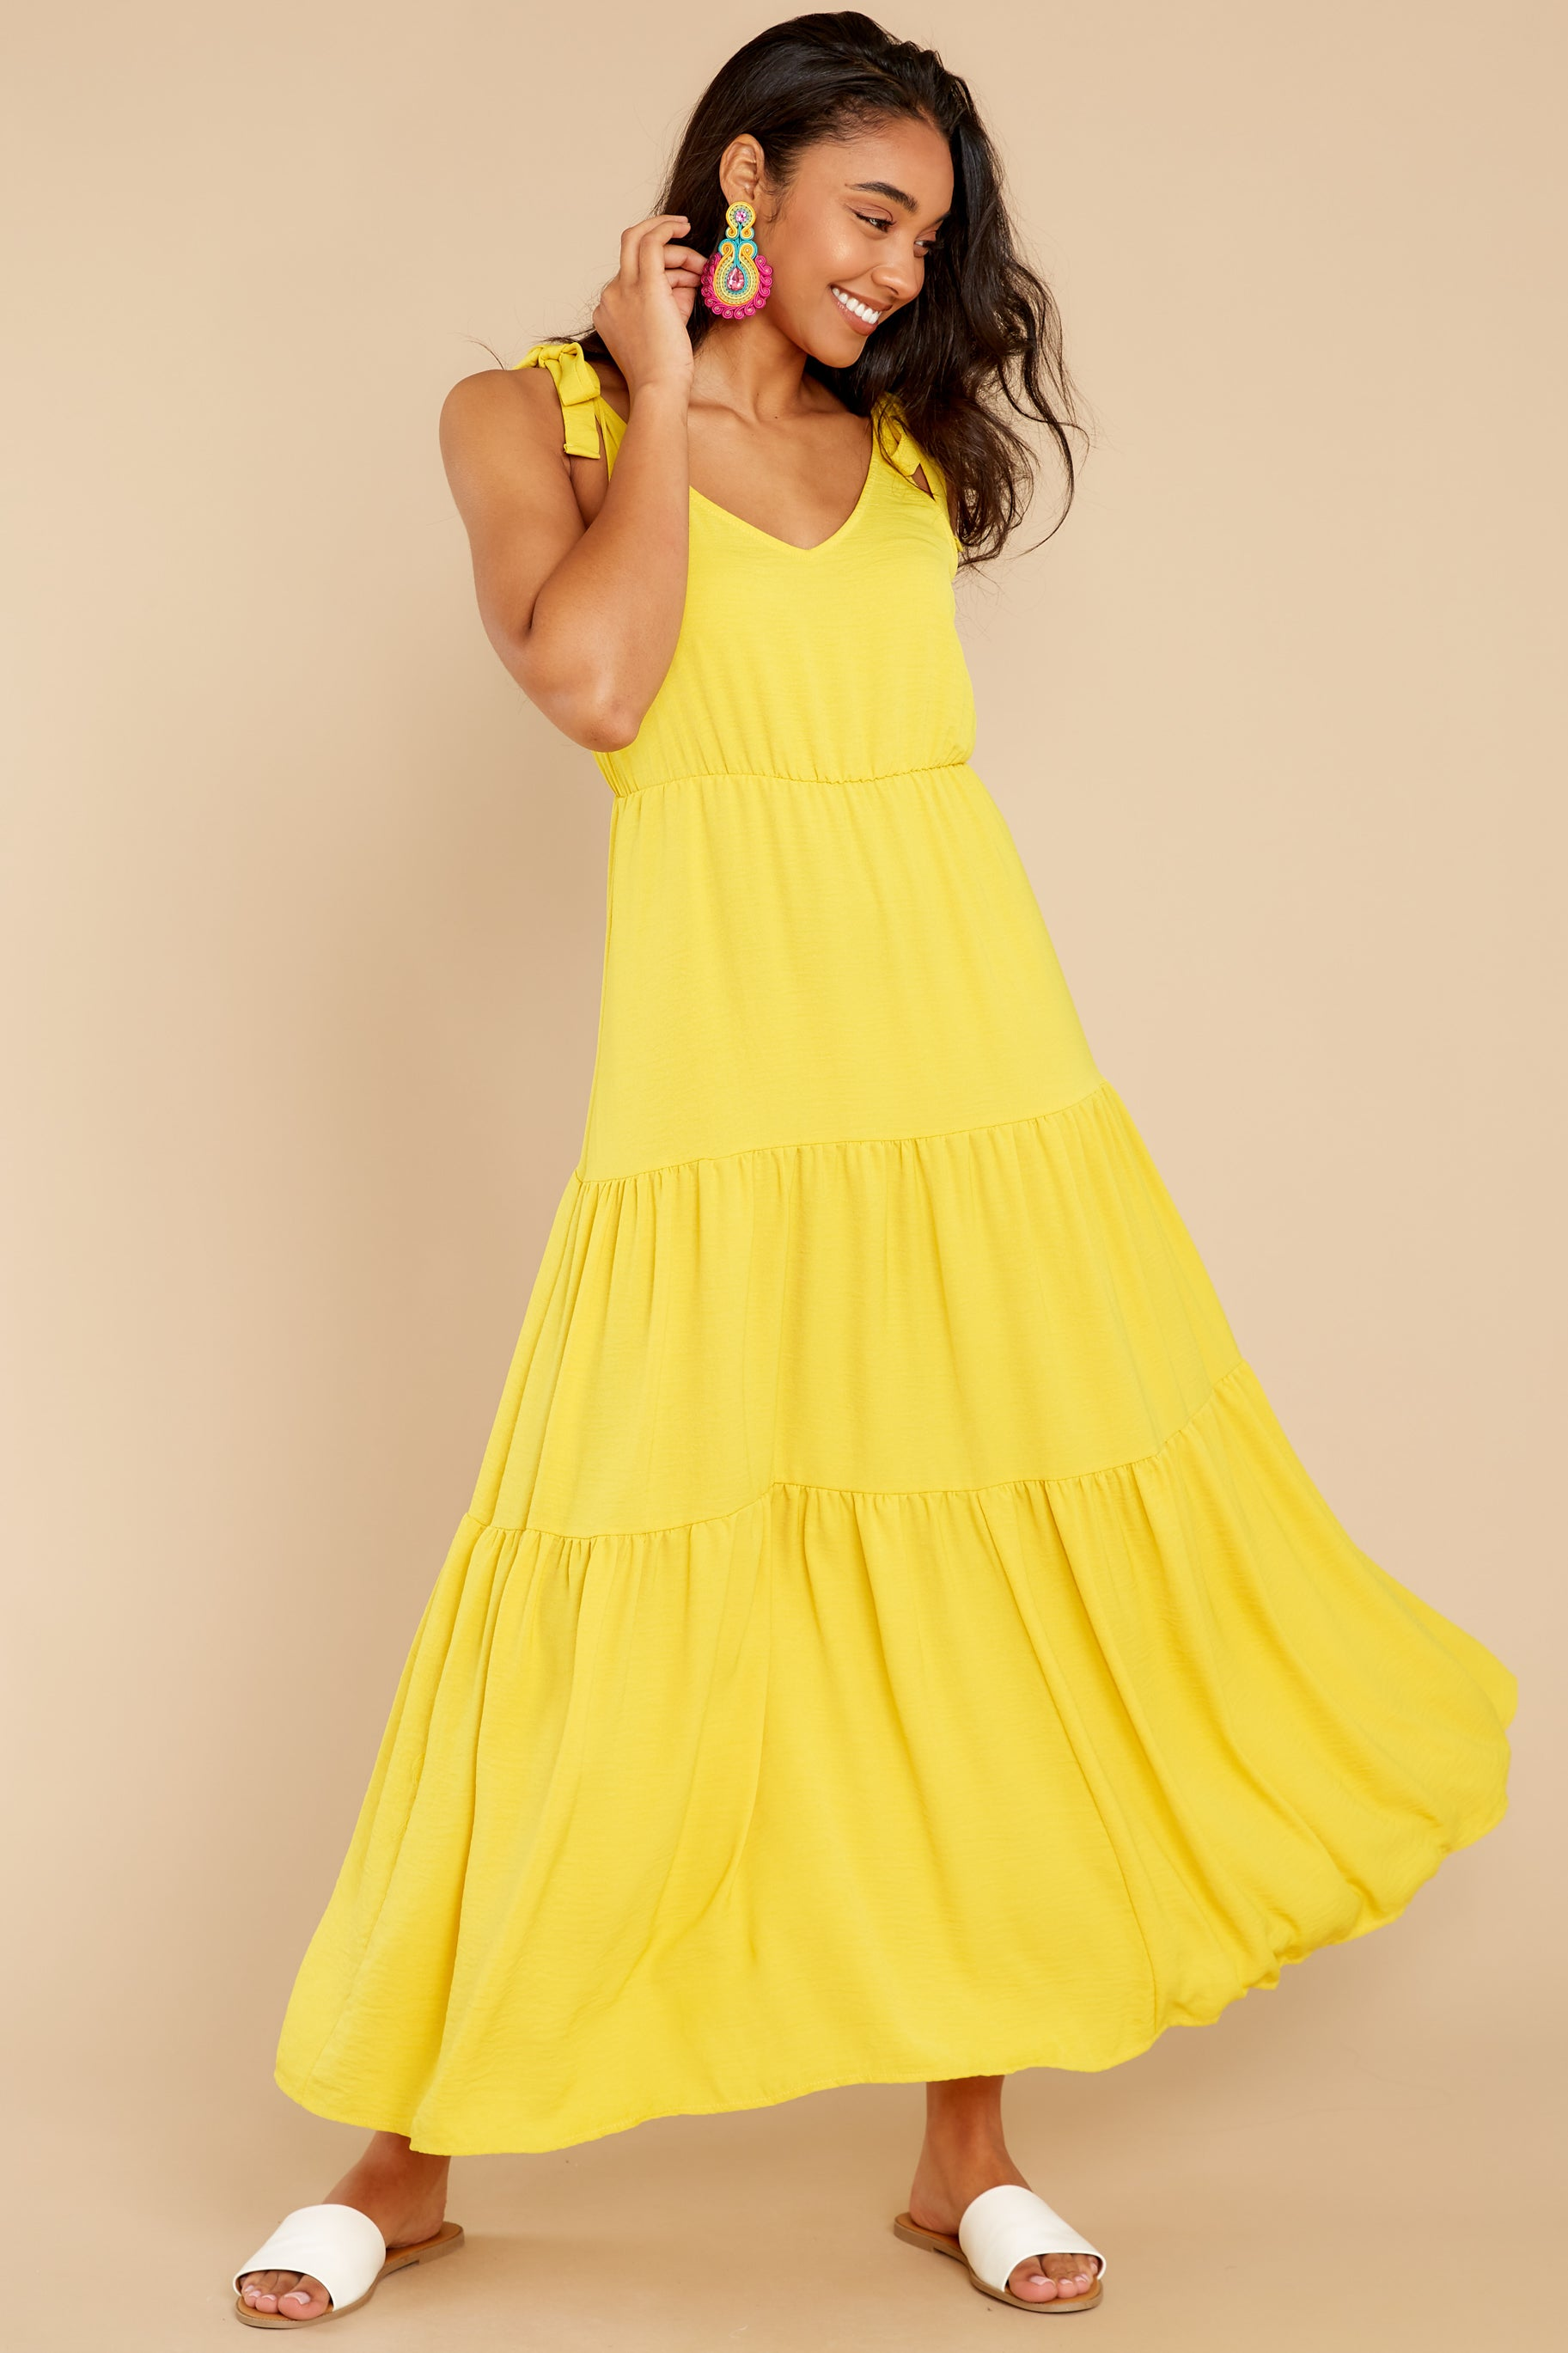 3 Right Kind Of Attention Yellow Maxi Dress at reddress.com